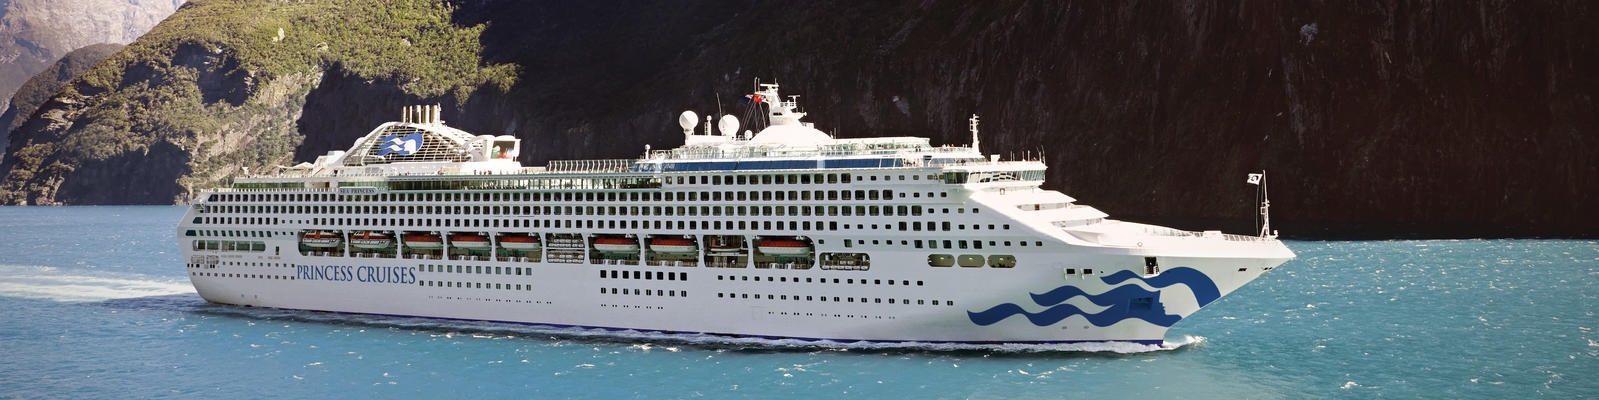 Sea Princess (Photo: Princess Cruises)